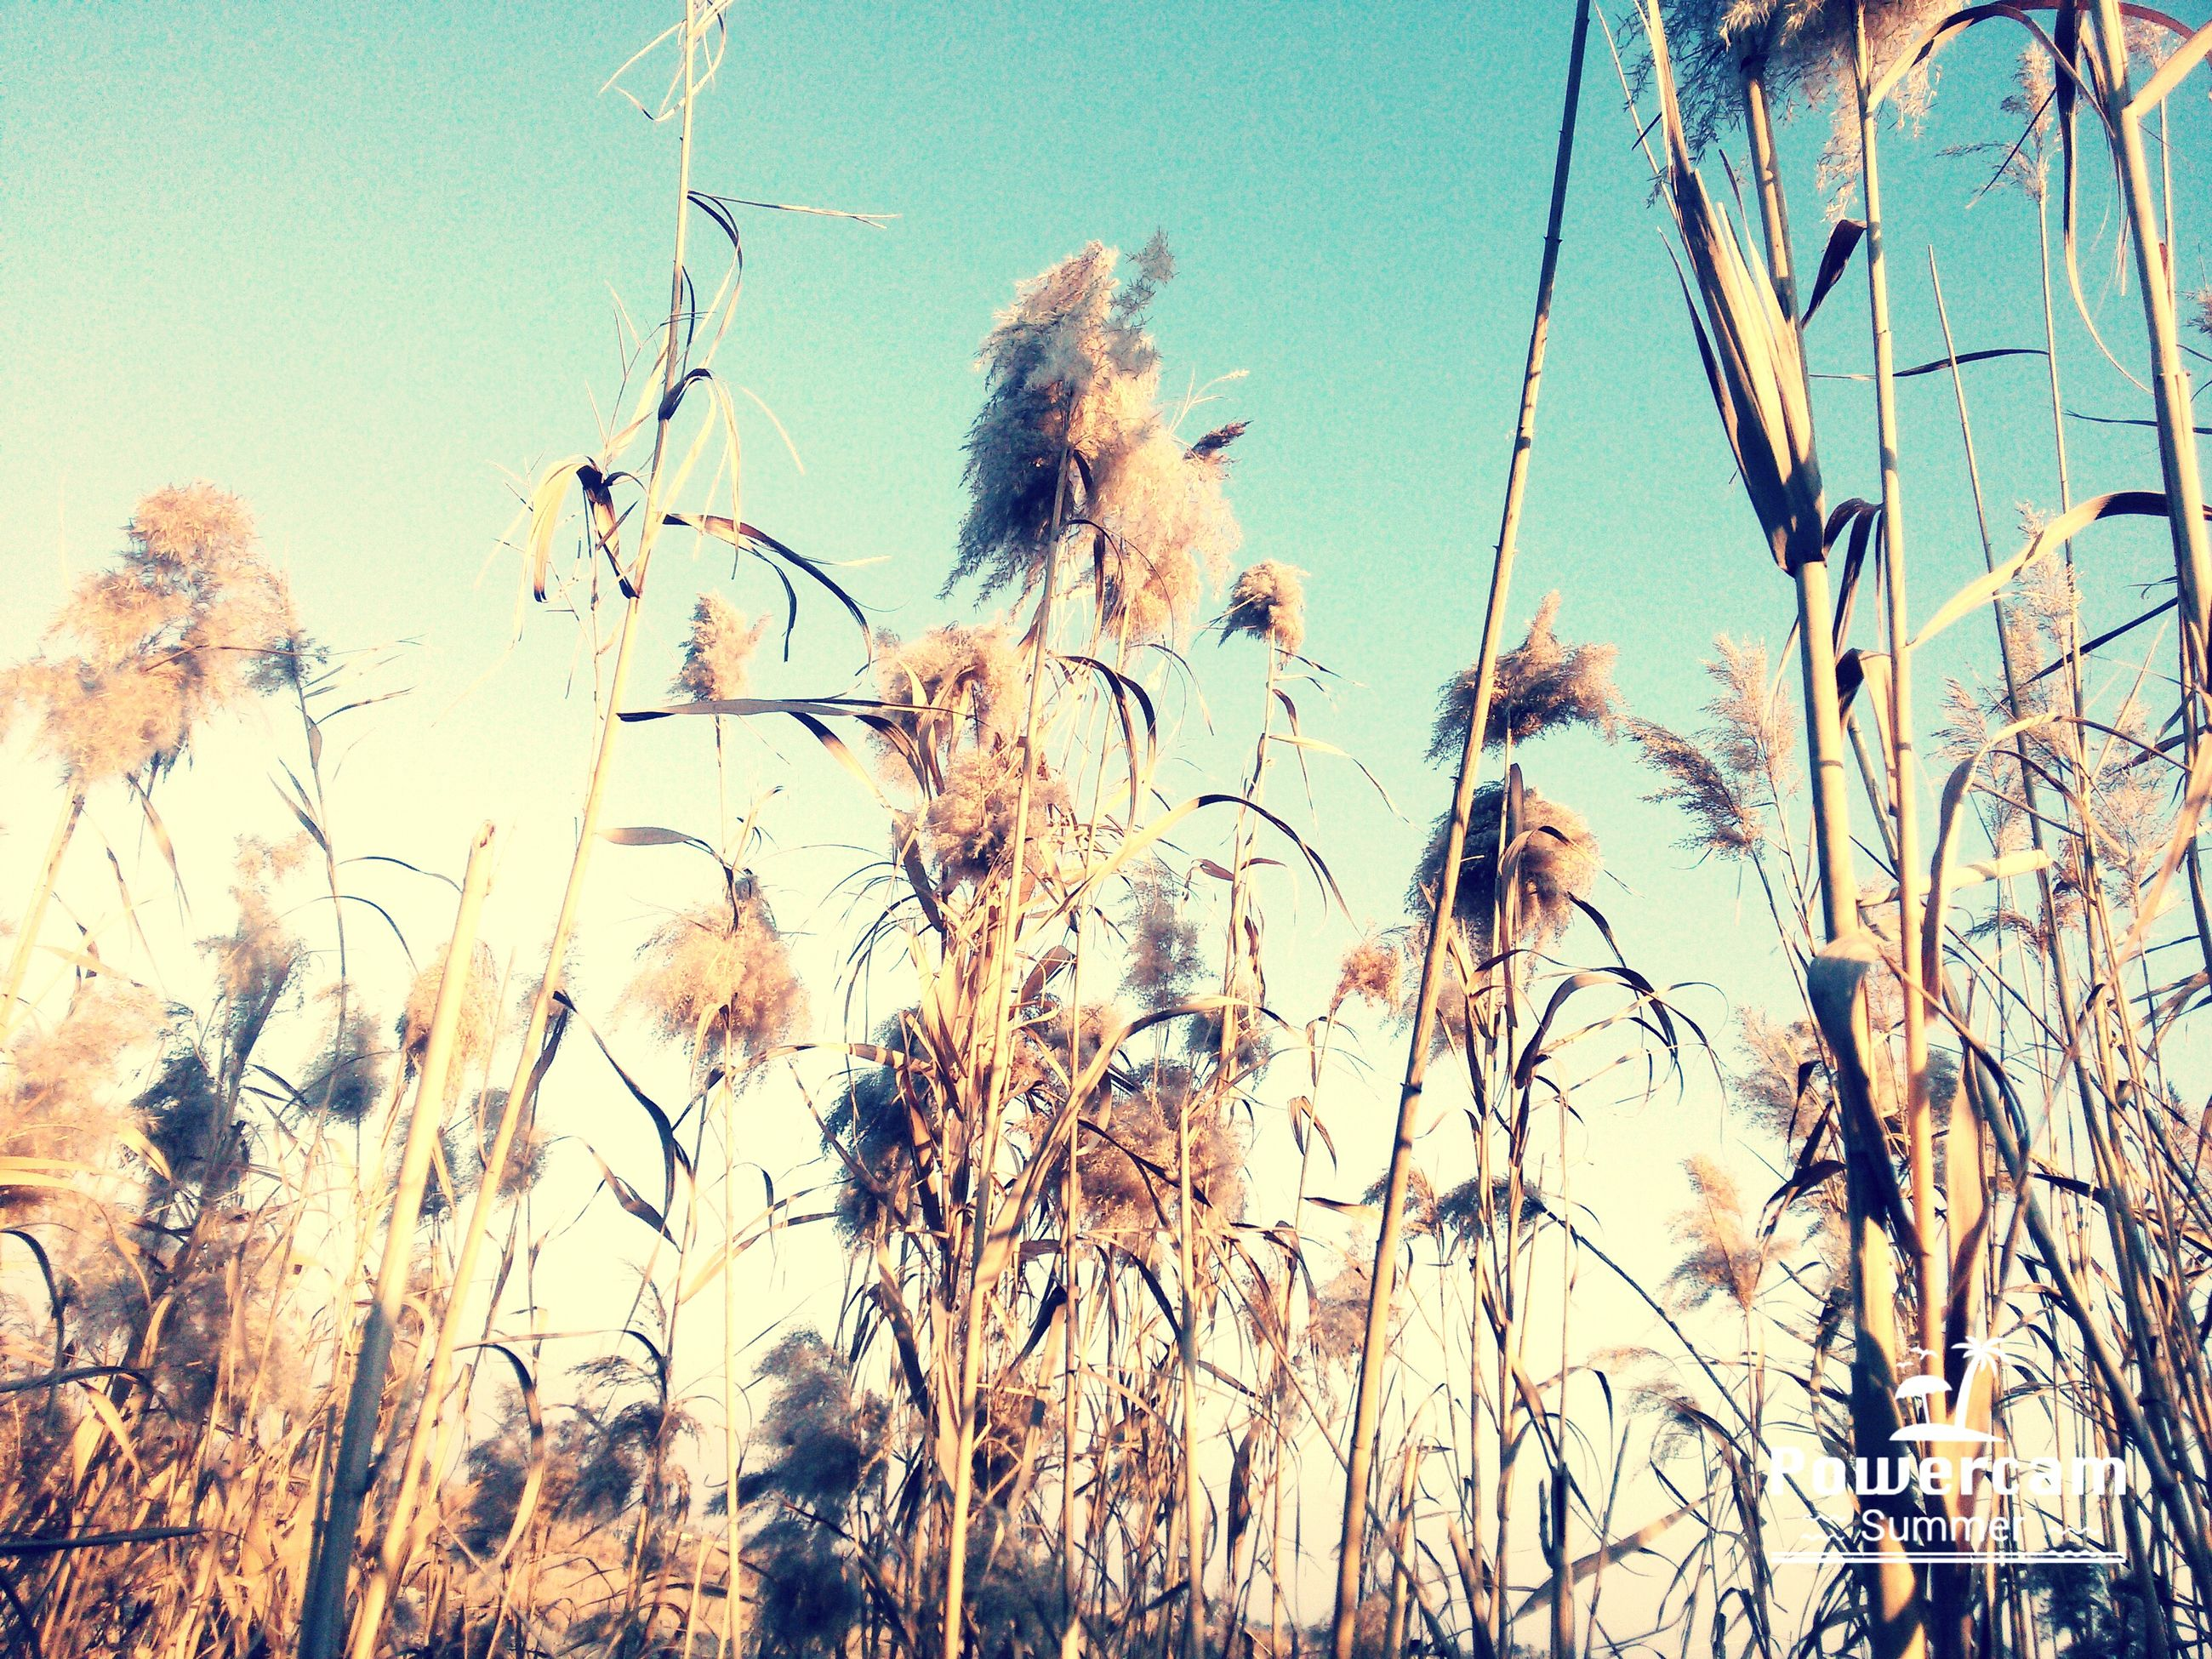 growth, nature, no people, sky, low angle view, close-up, plant, outdoors, day, backgrounds